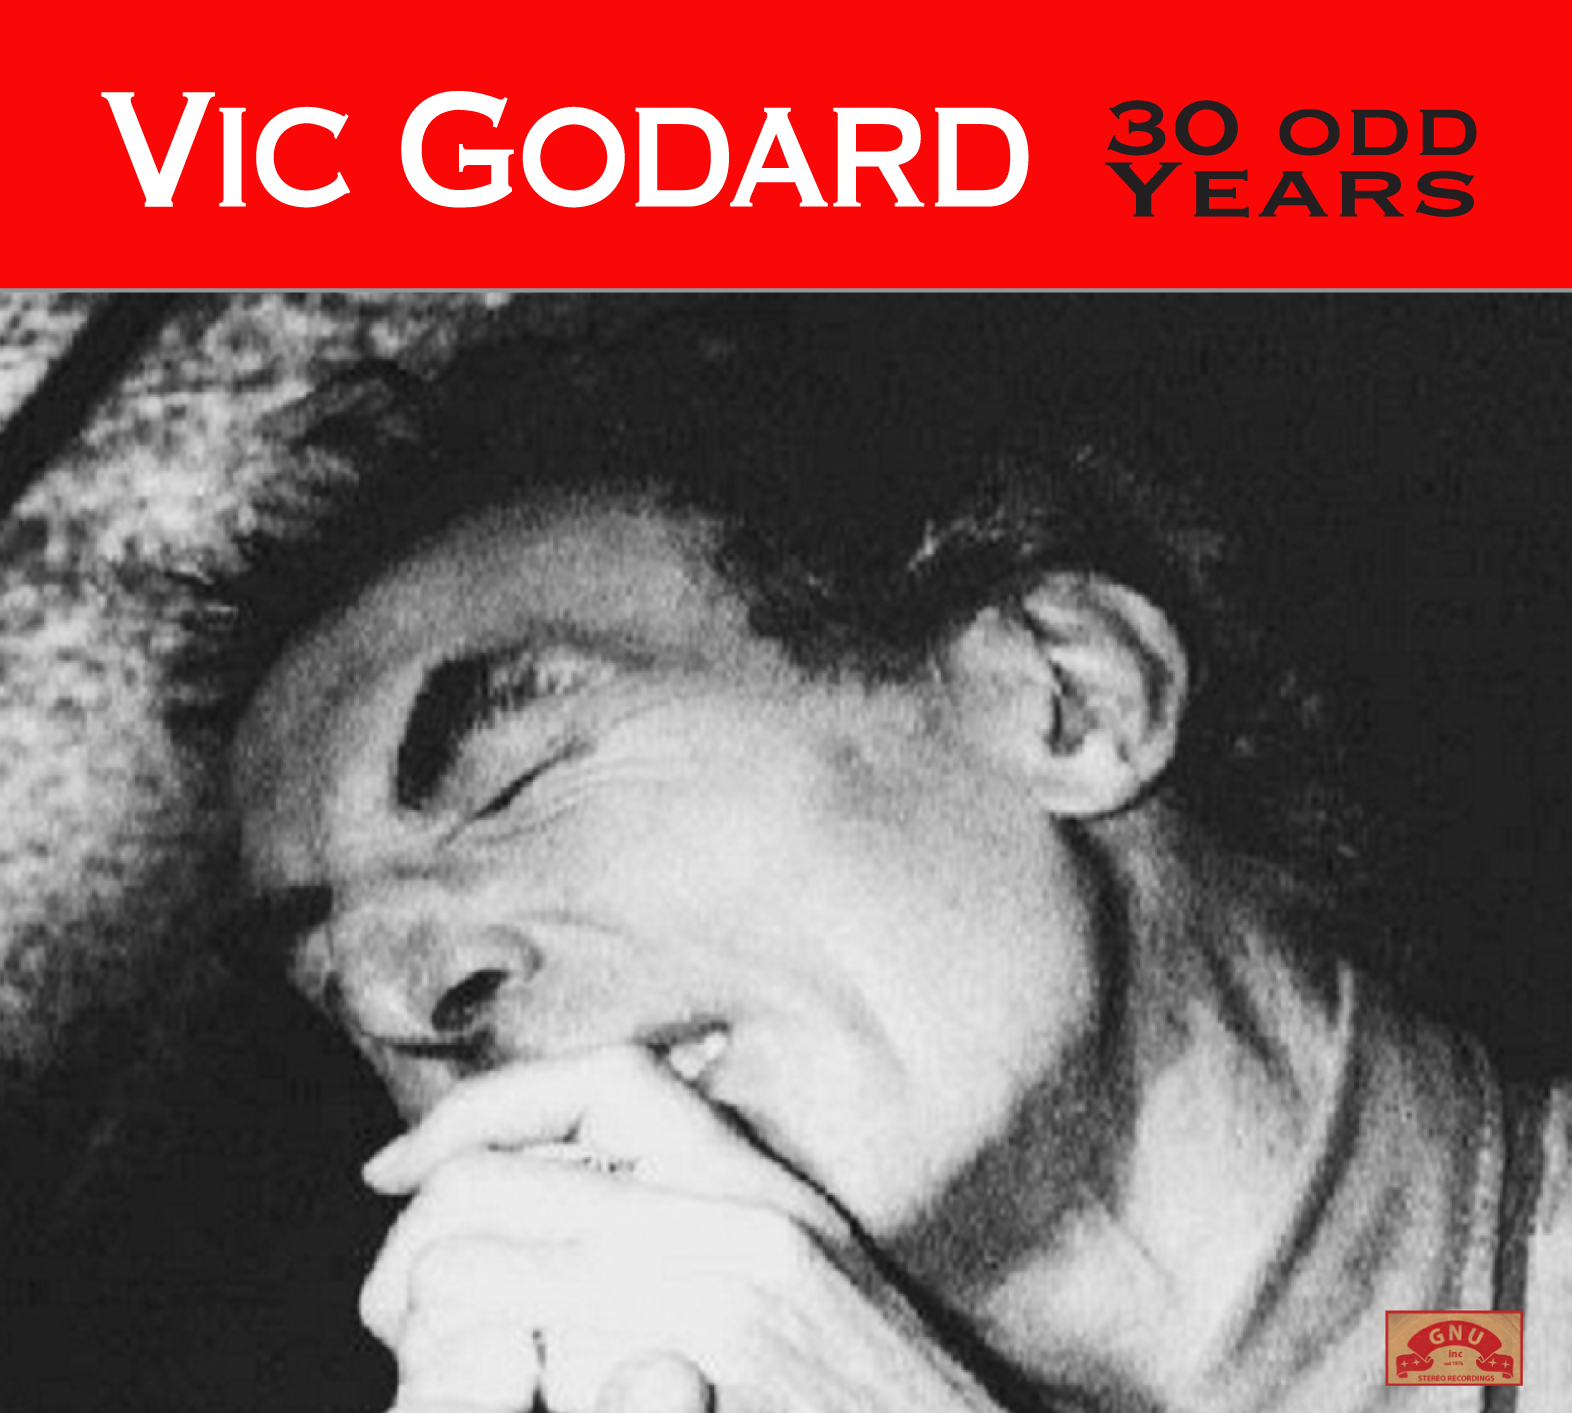 vic godard 30 odd years cover.jpg